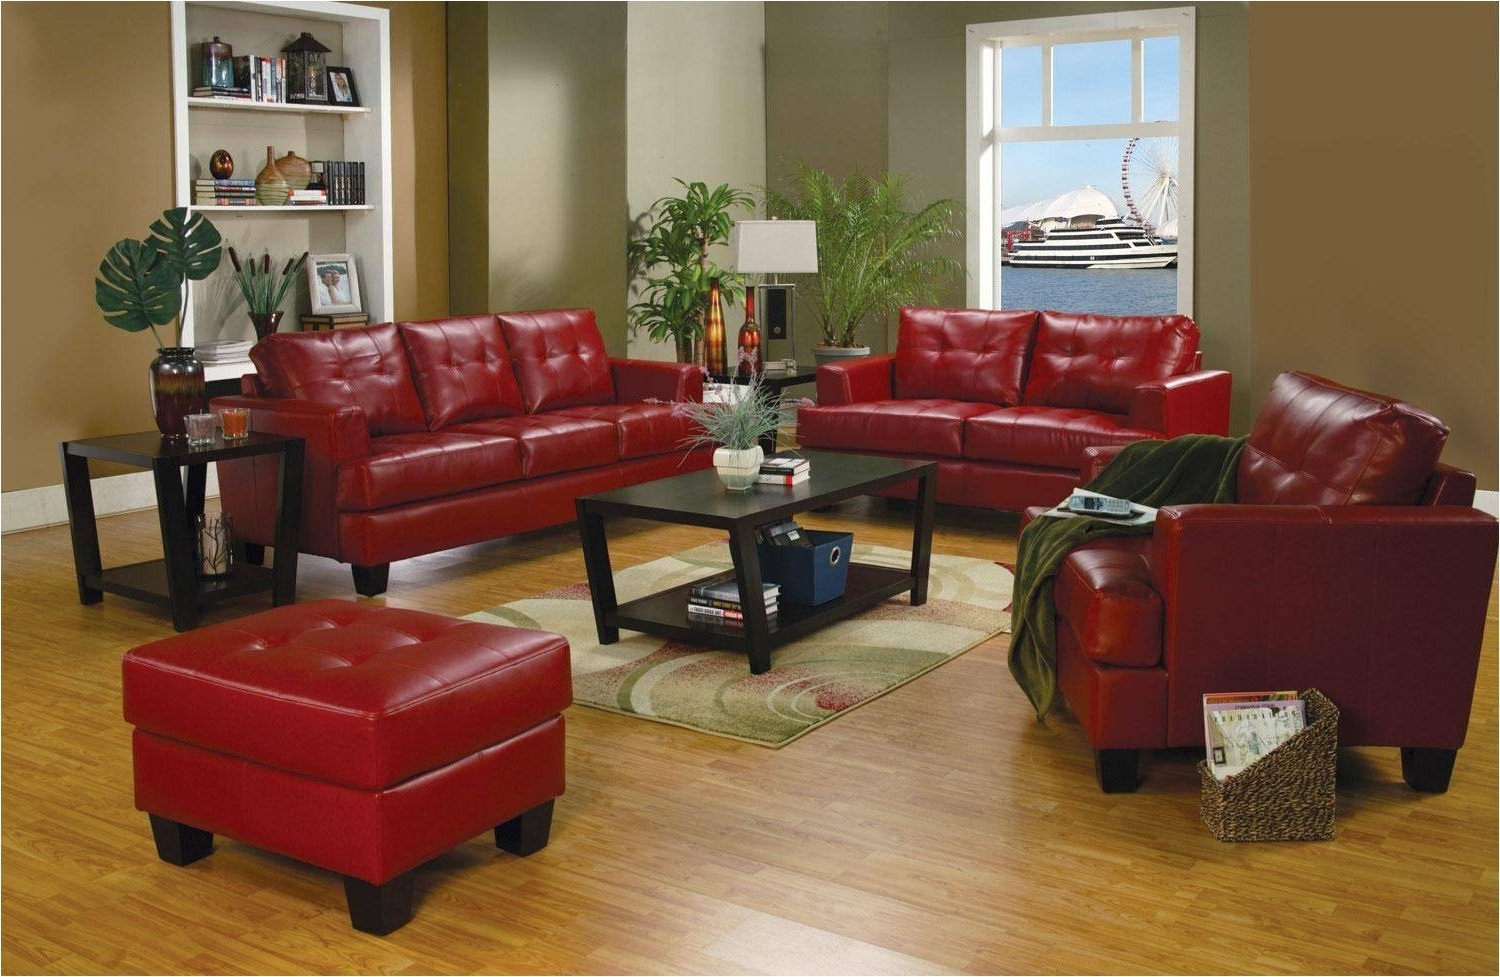 Red Leather Couches And Loveseats Inside Current Burgundy Leather Couch And Loveseat Red Sectional Red Leather (View 2 of 15)